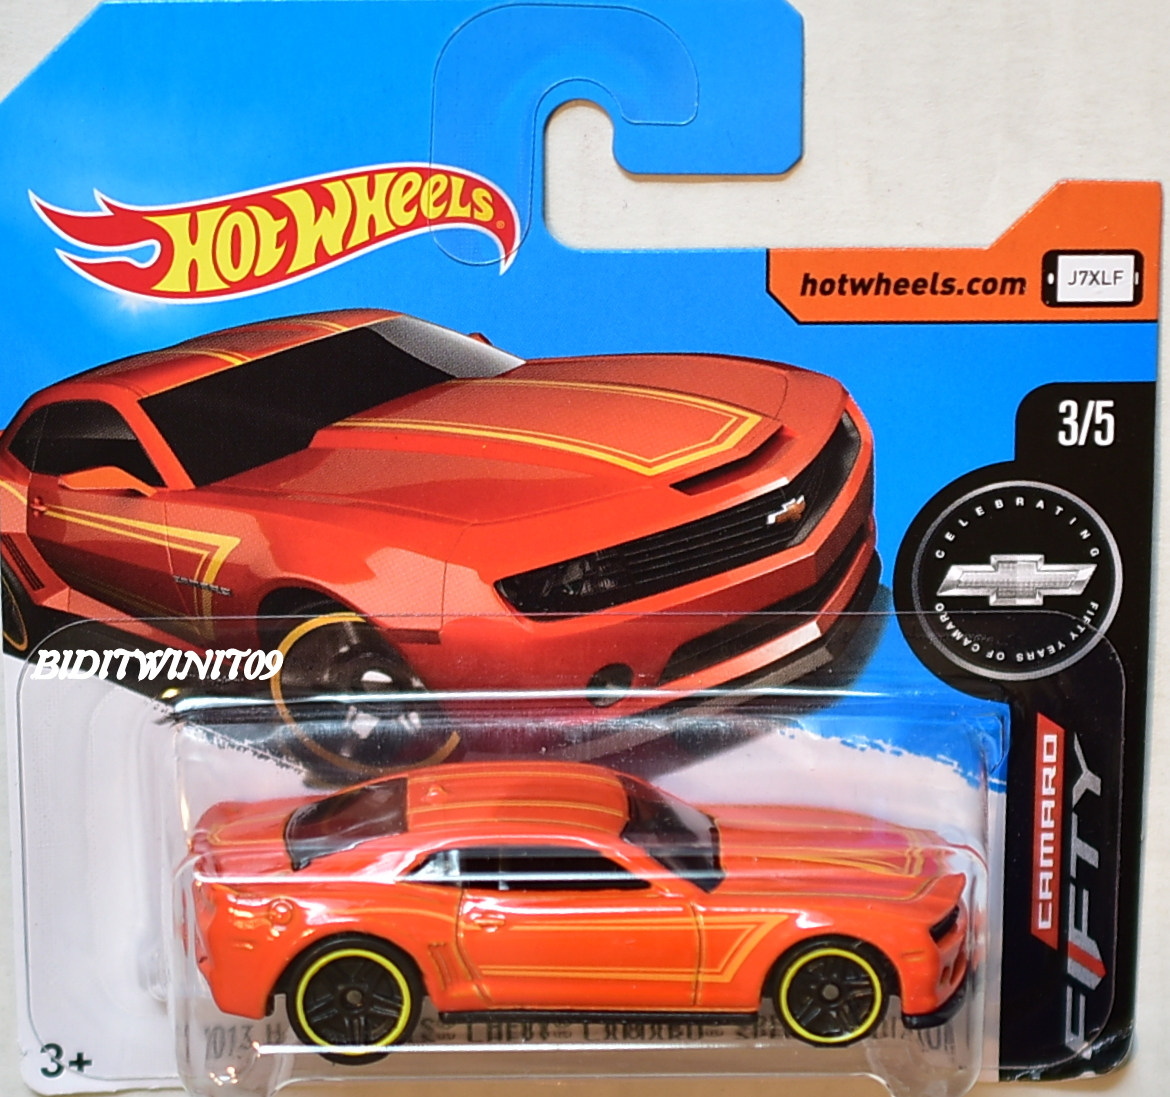 HOT WHEELS 2017 2013 HW CHEVY CAMARO SPECIAL EDITION SHORT CARD ORANGE